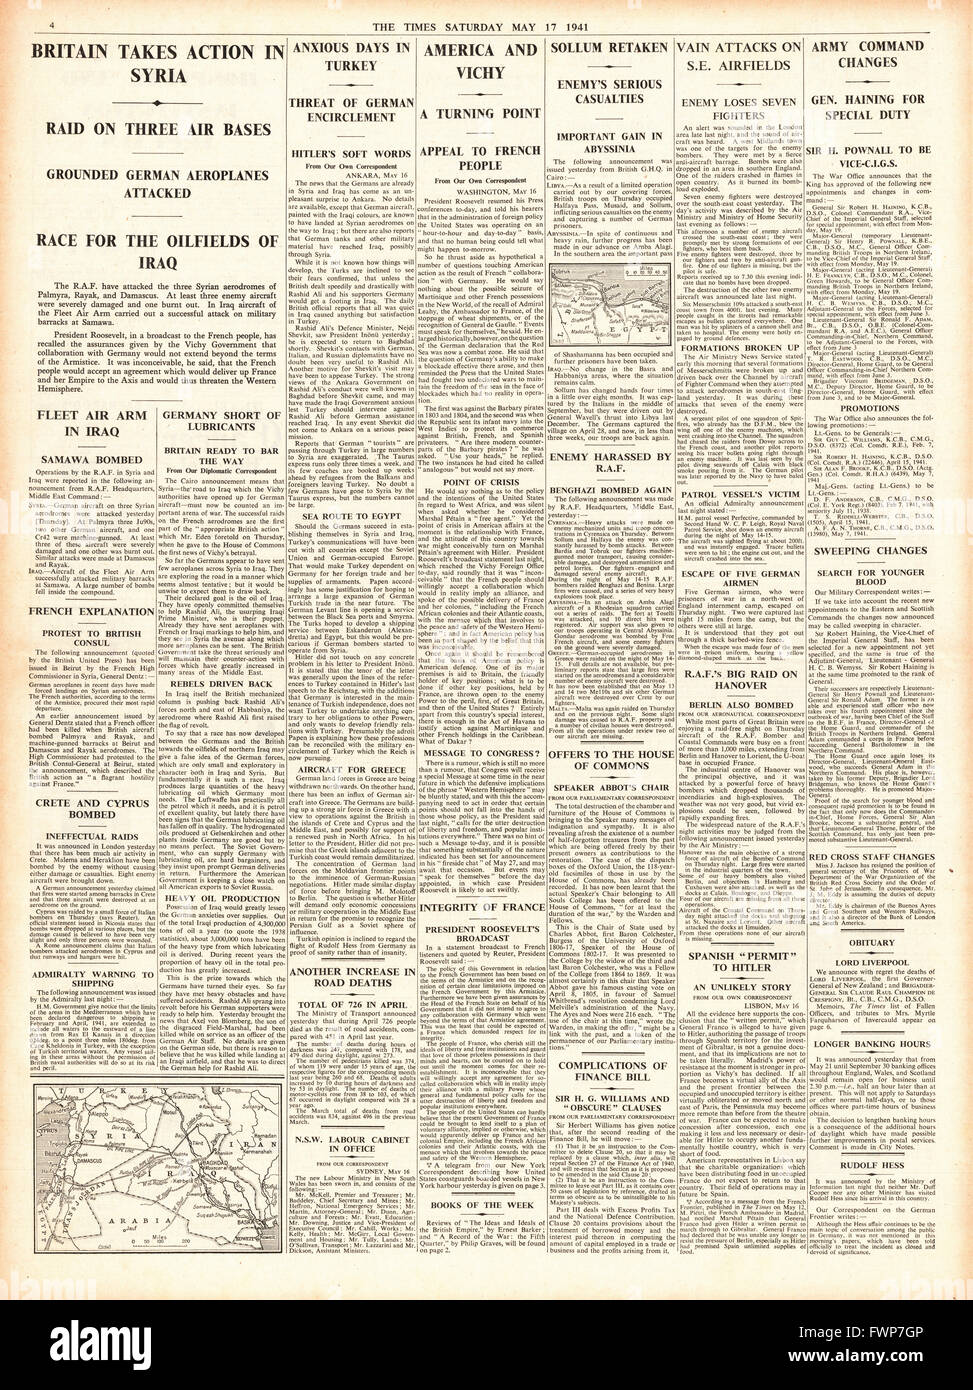 1941 page 4 The Times RAF bomb air bases in Syria - Stock Image